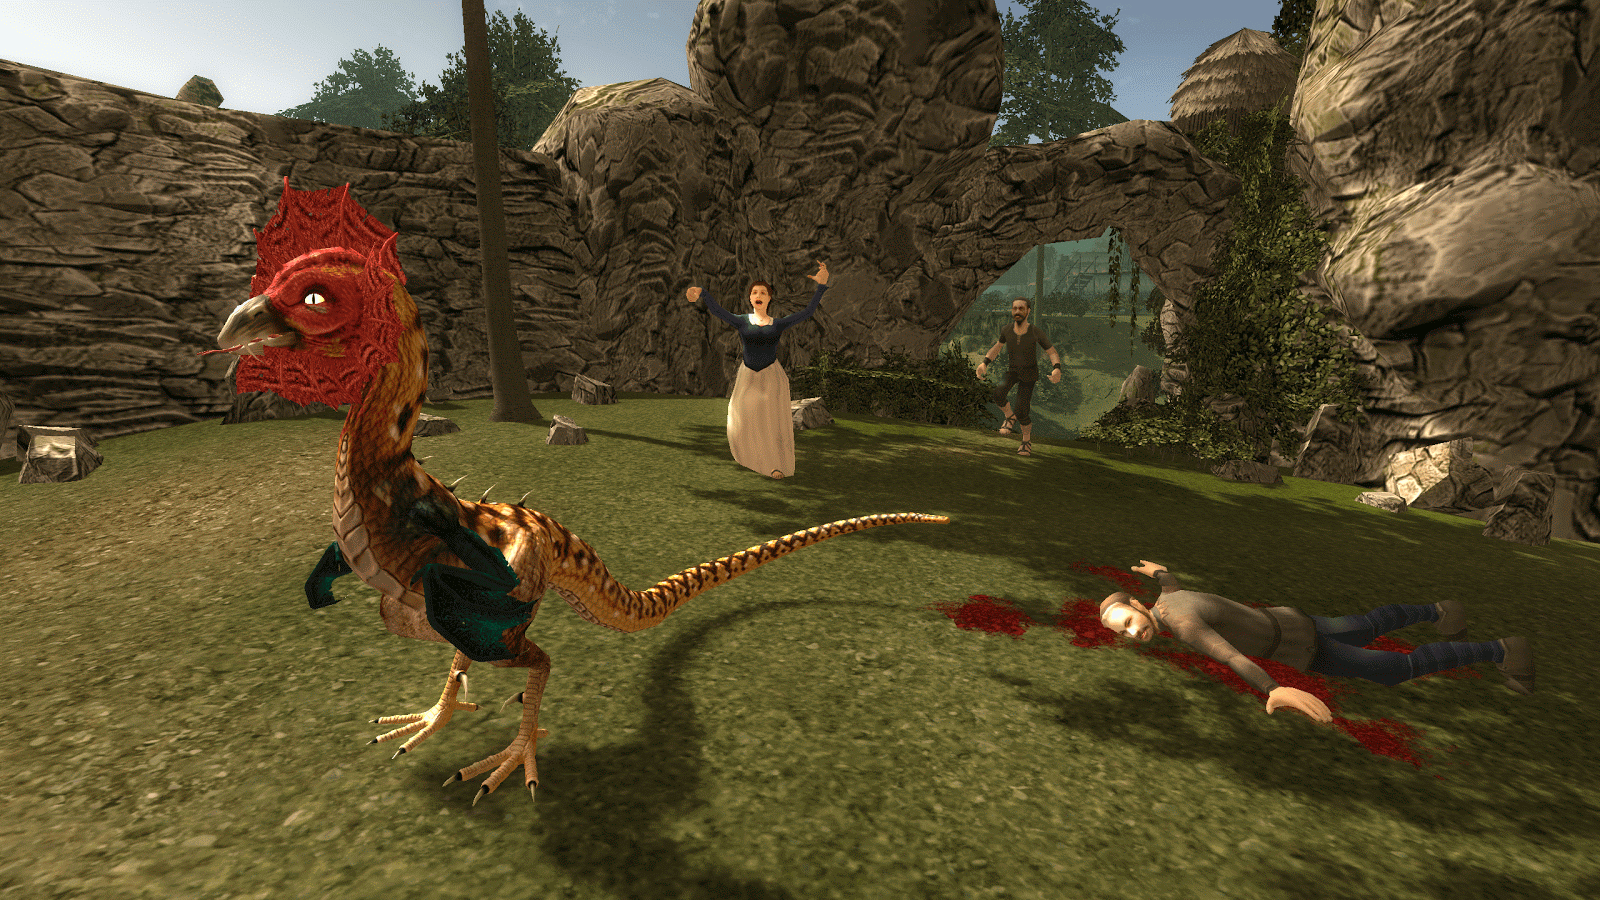 Basilisk Simulation 3d 10 Apk Download Android Adventure - roblox gryphon horse hippogriff in horse world update